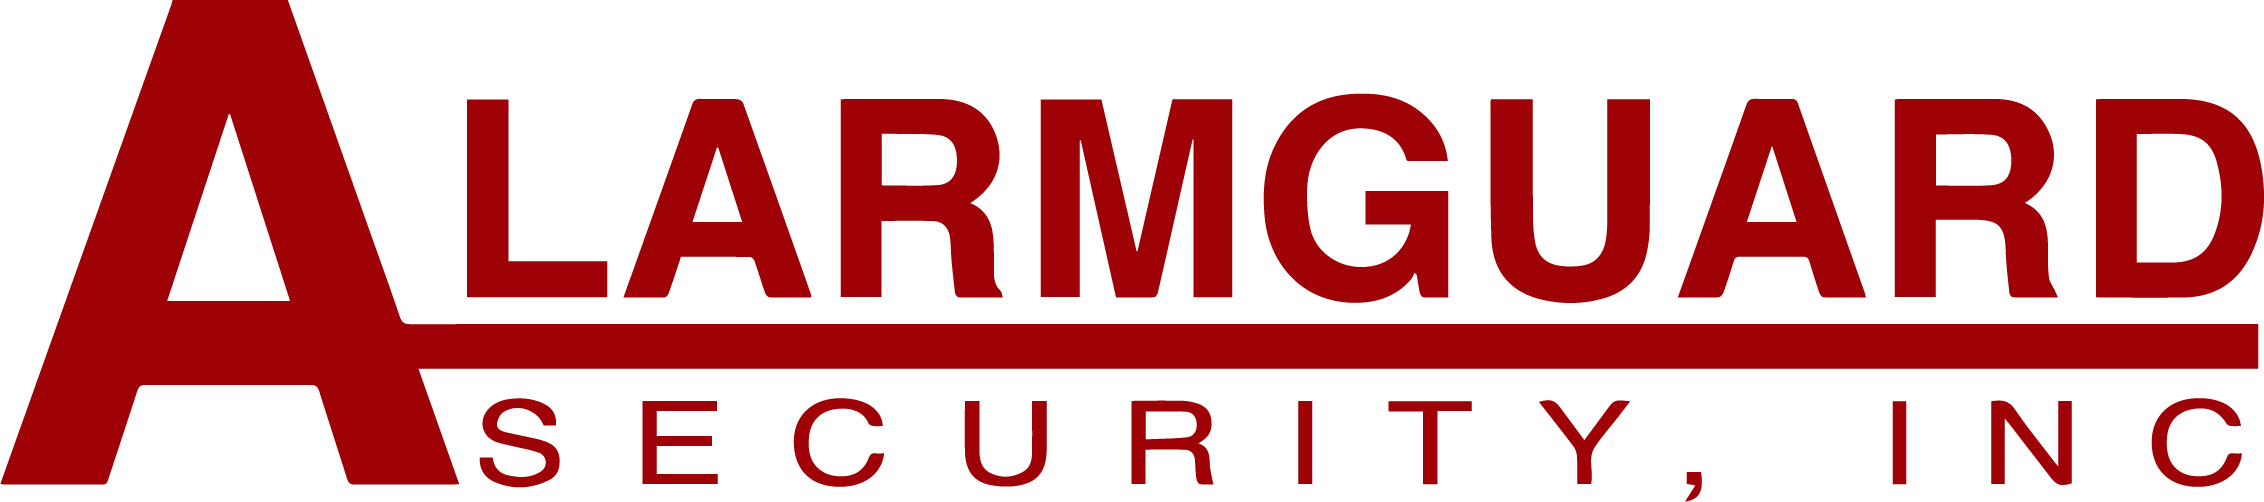 Alarmguard Security